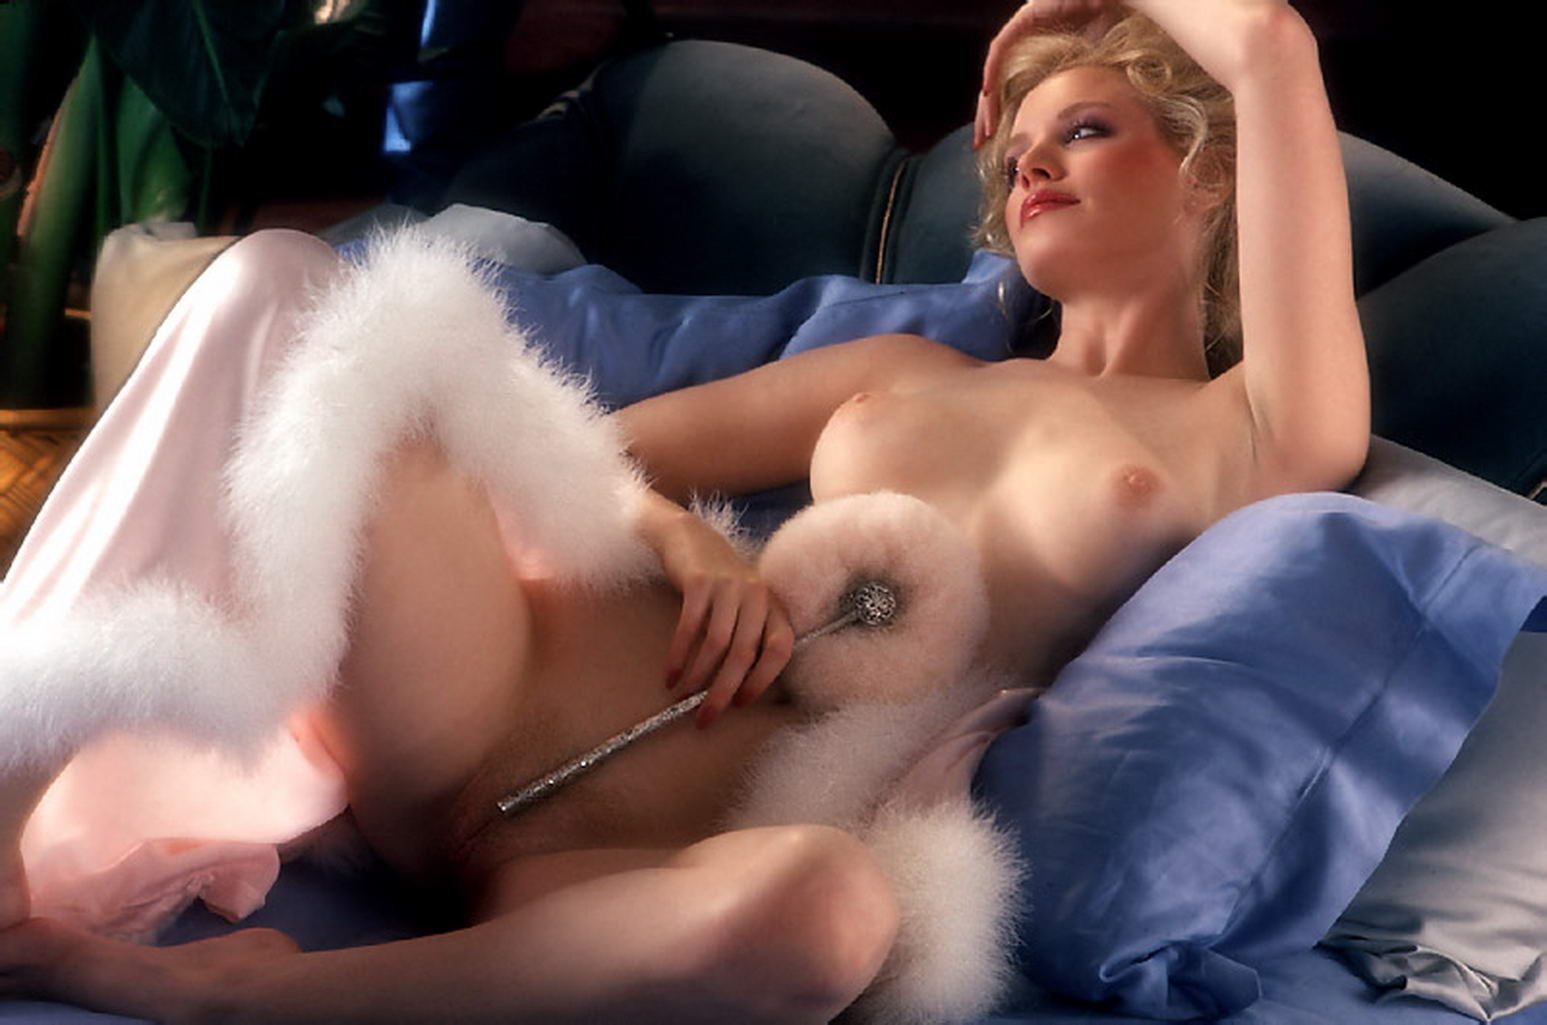 Shannon tweed uncensored pussy pics with